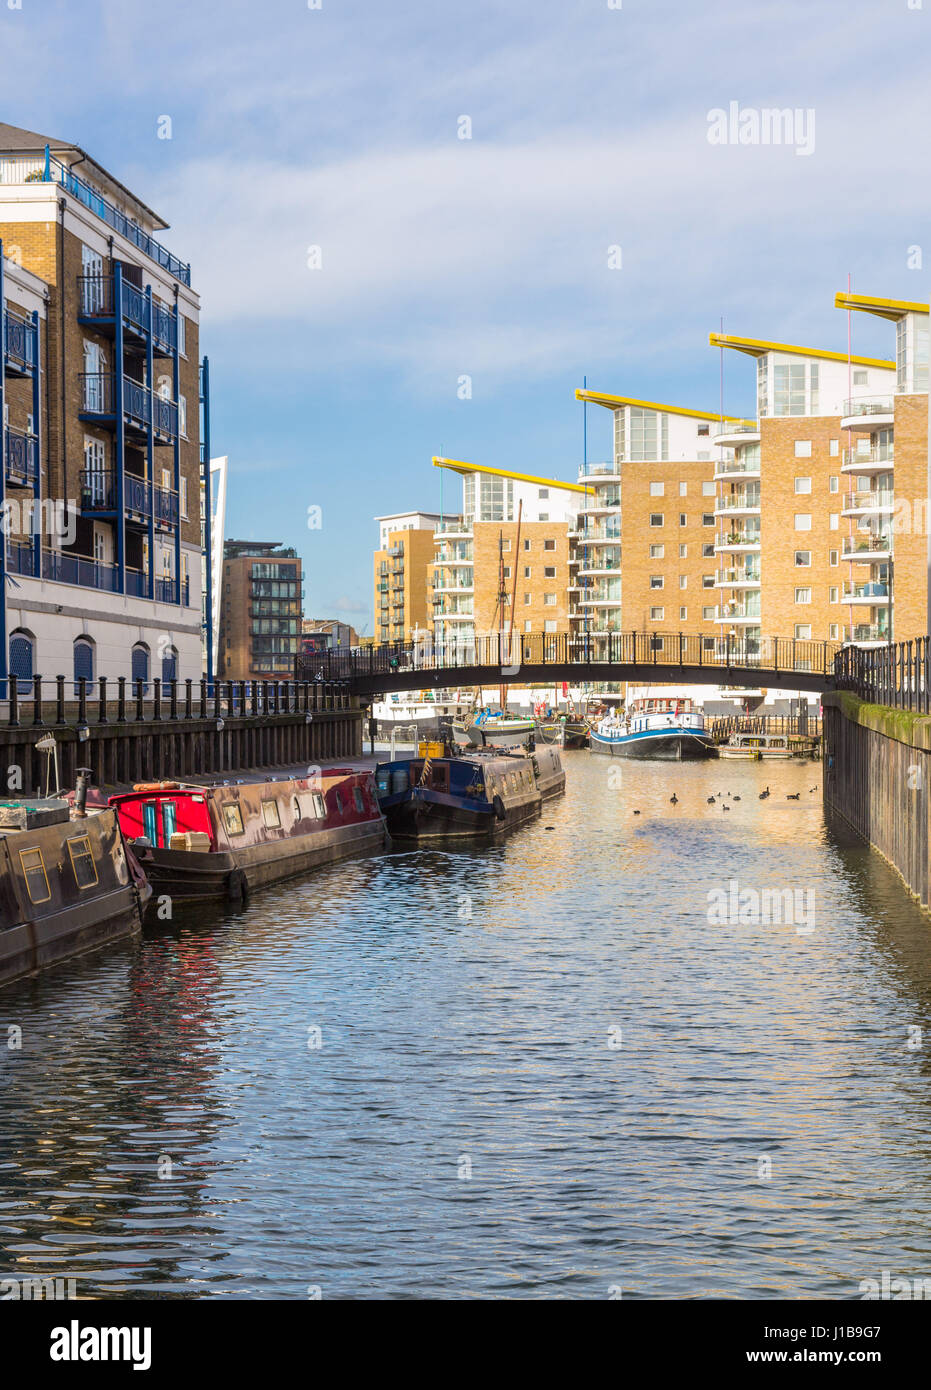 Limehouse Cut looking to the apartment buildings at Limehouse Basin Marina in Docklands with houseboats, London, - Stock Image